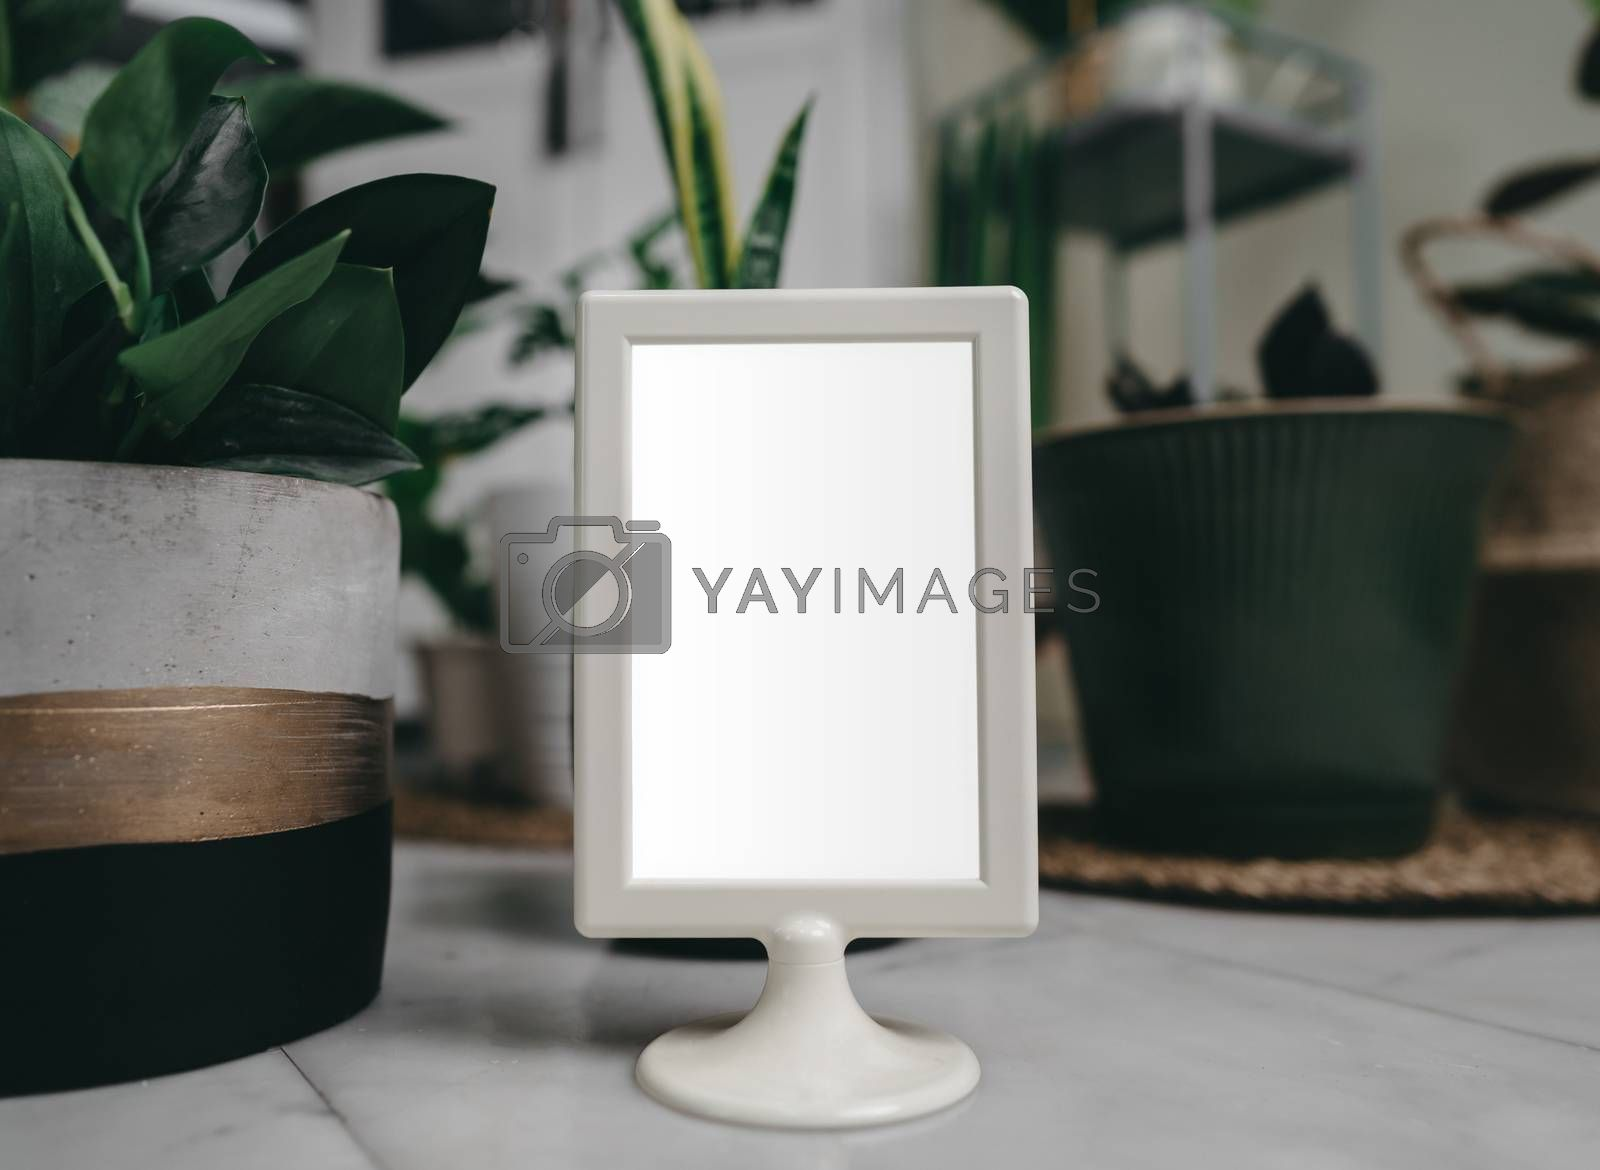 Hipster mockup image on picture frame or portrait frame on table.Showing a frame with blank white screen.Green nature background front view.